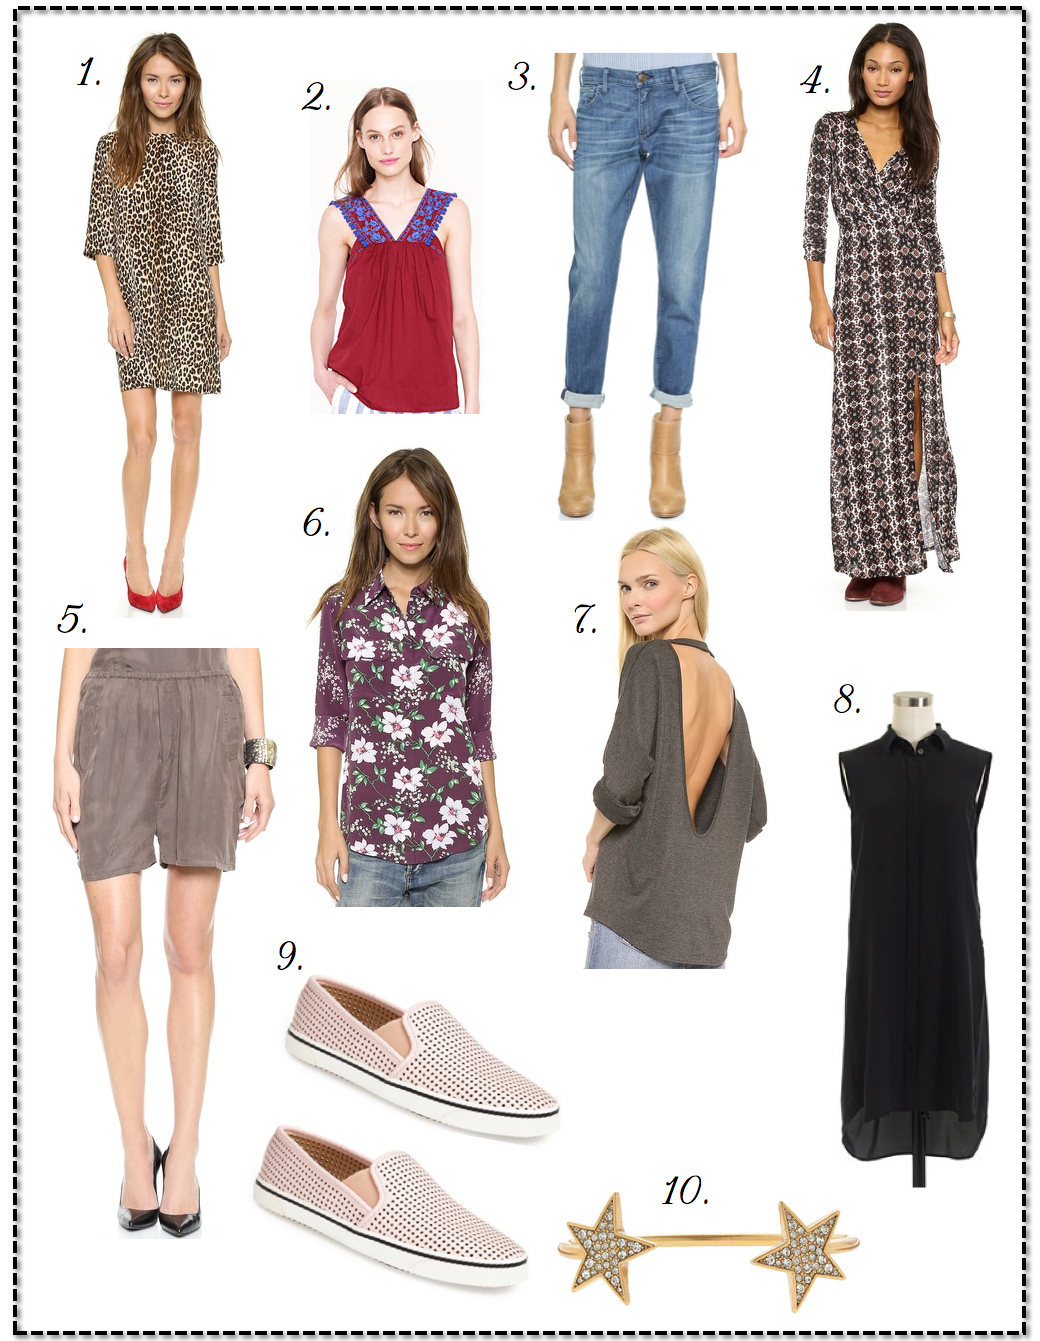 rack it up fall preview